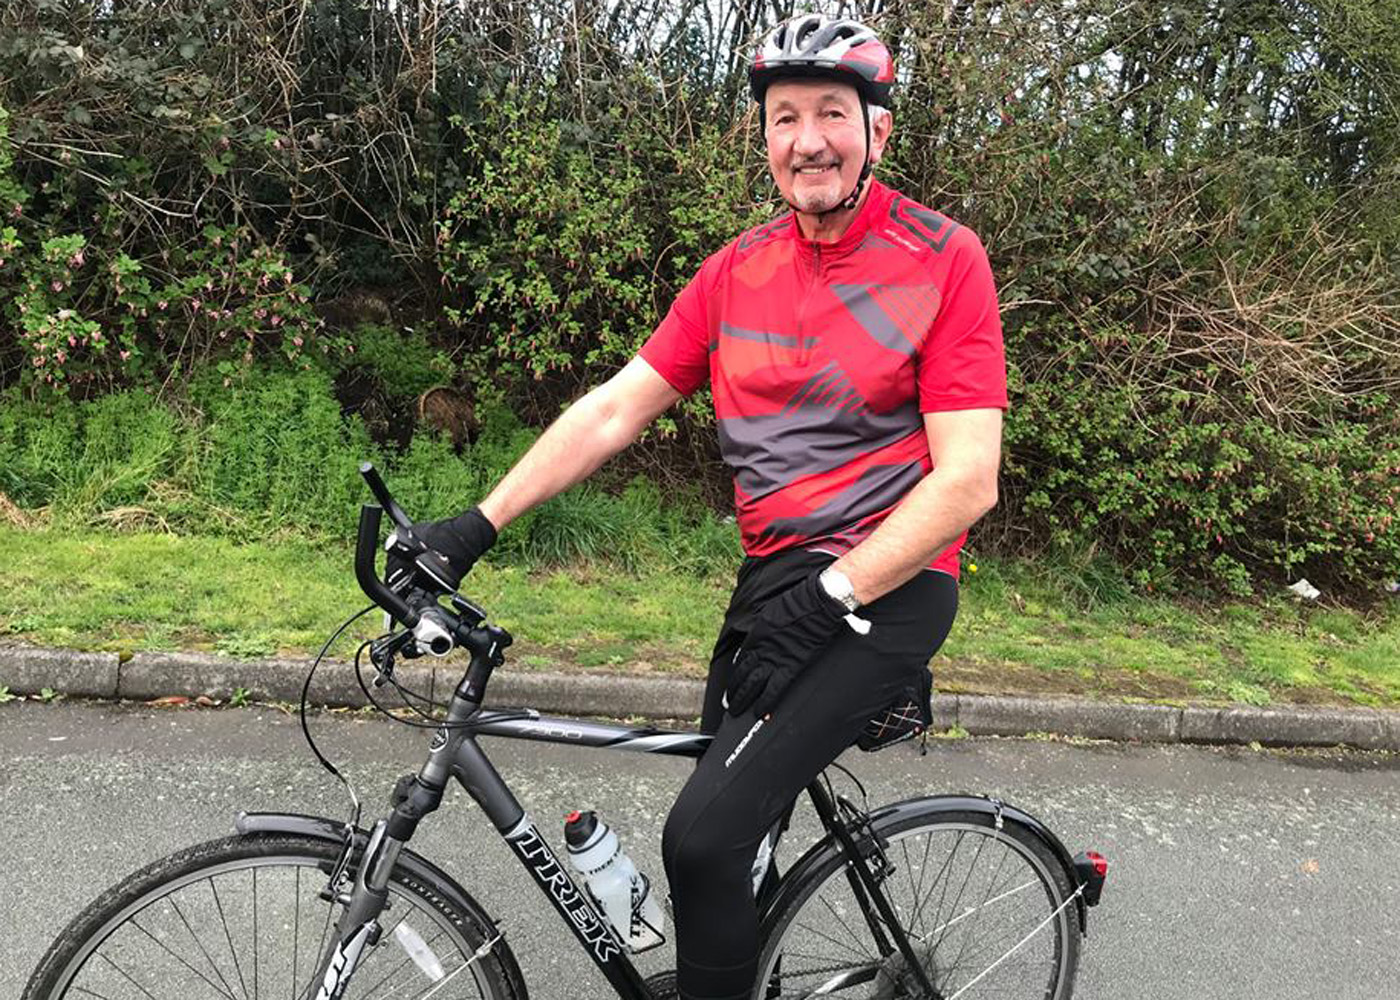 Charity Bike Ride - In Aid of Captains' 2019 Charities